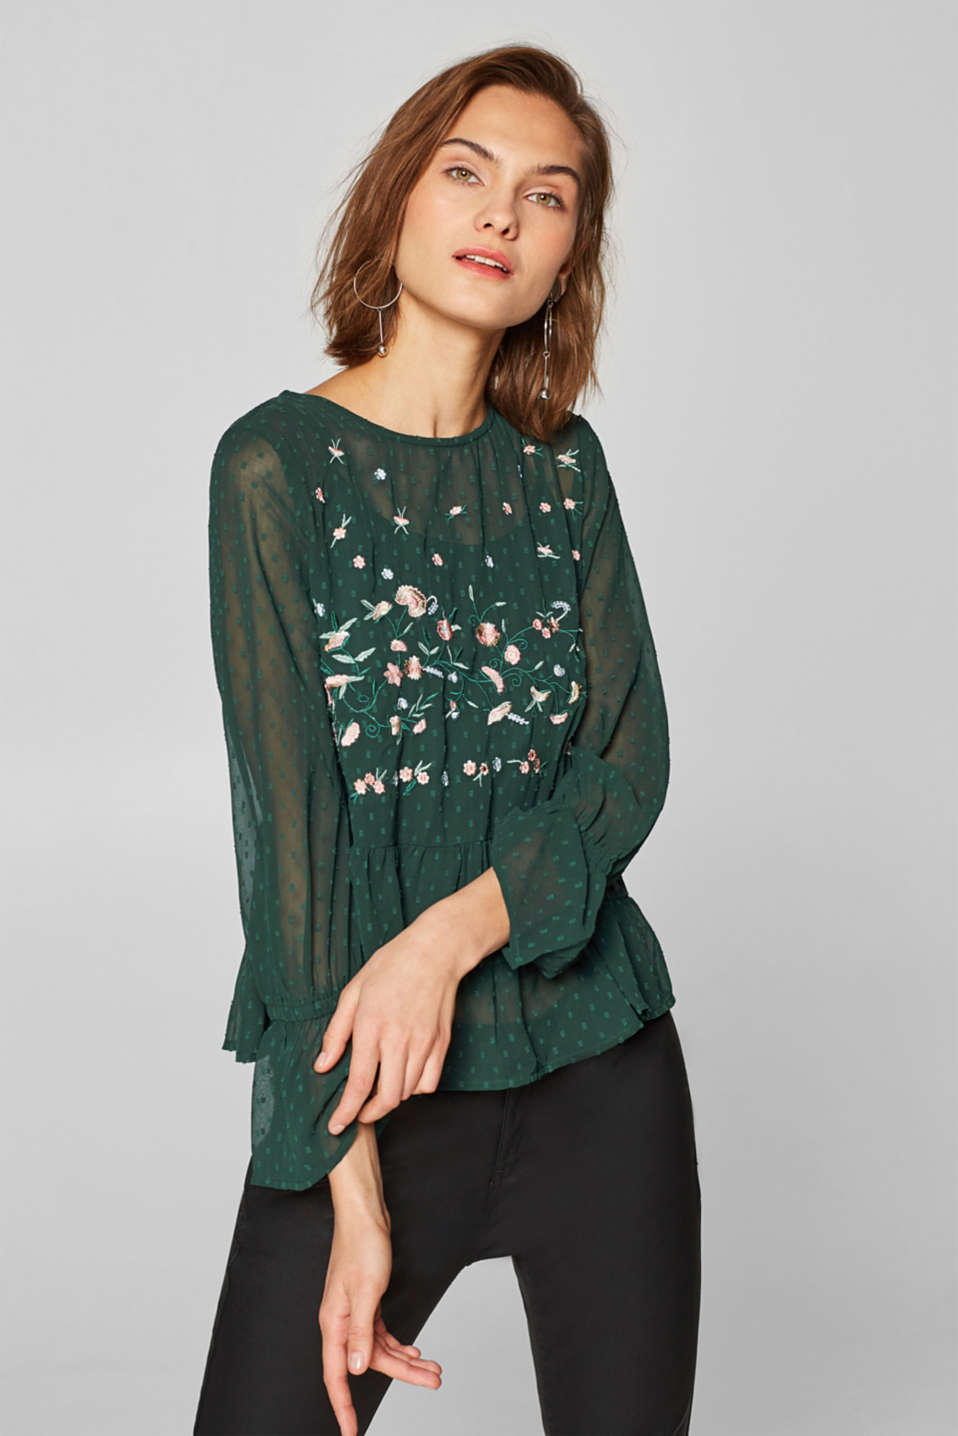 edc - Polka dot chiffon blouse with floral embroidery